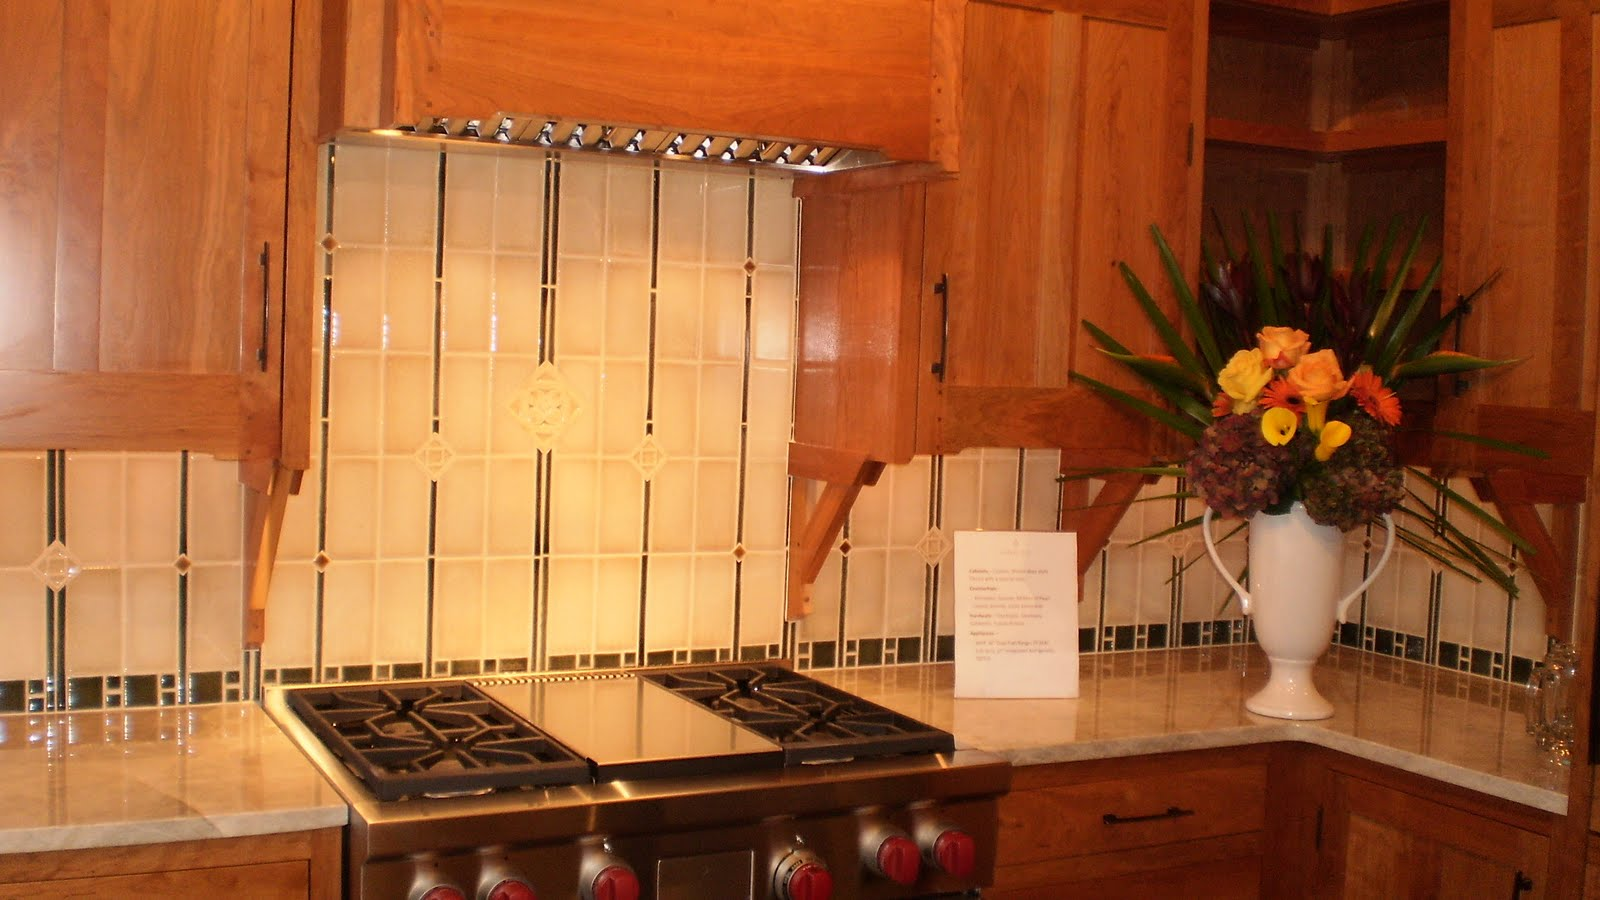 Tile Art Ceramic & Stone: Artisan Backsplash Designs